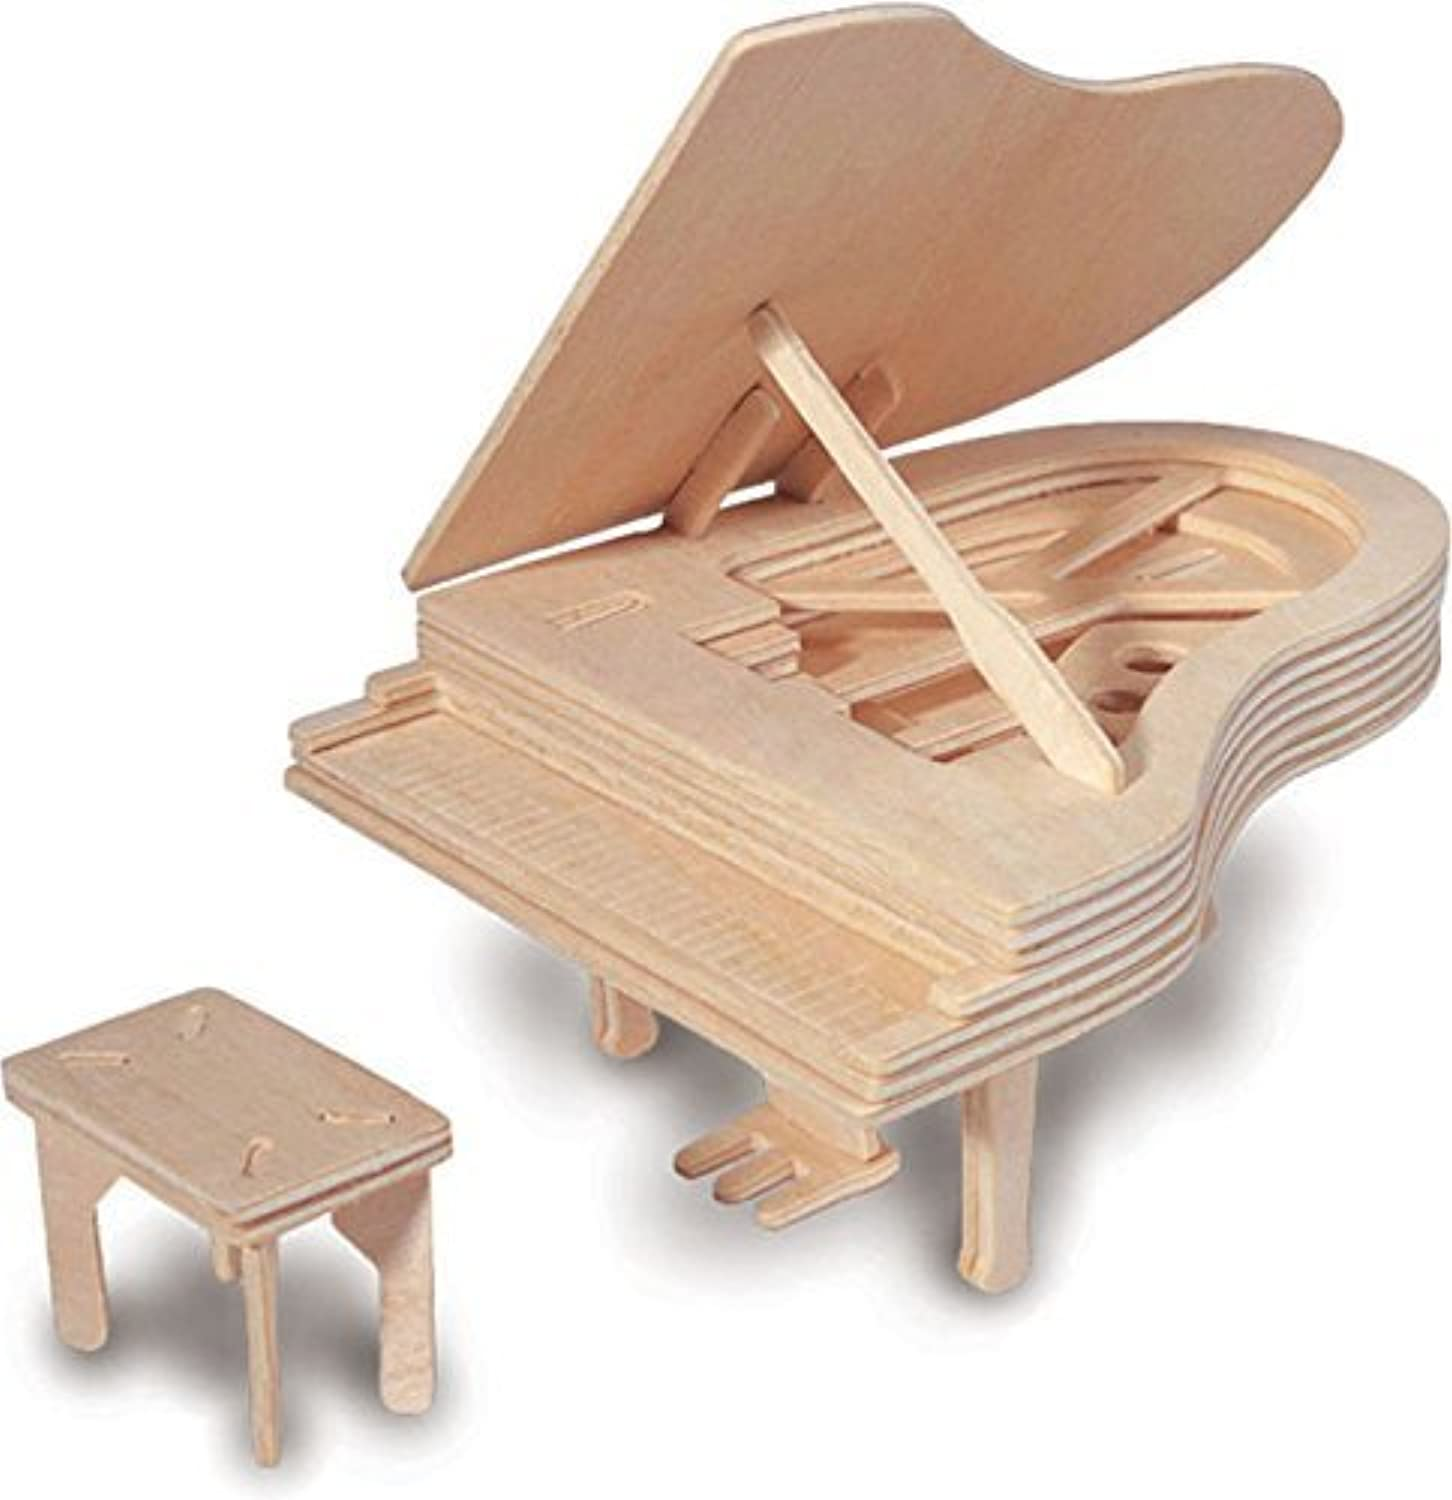 Piano  QUAY Woodcraft Construction Kit by Quay